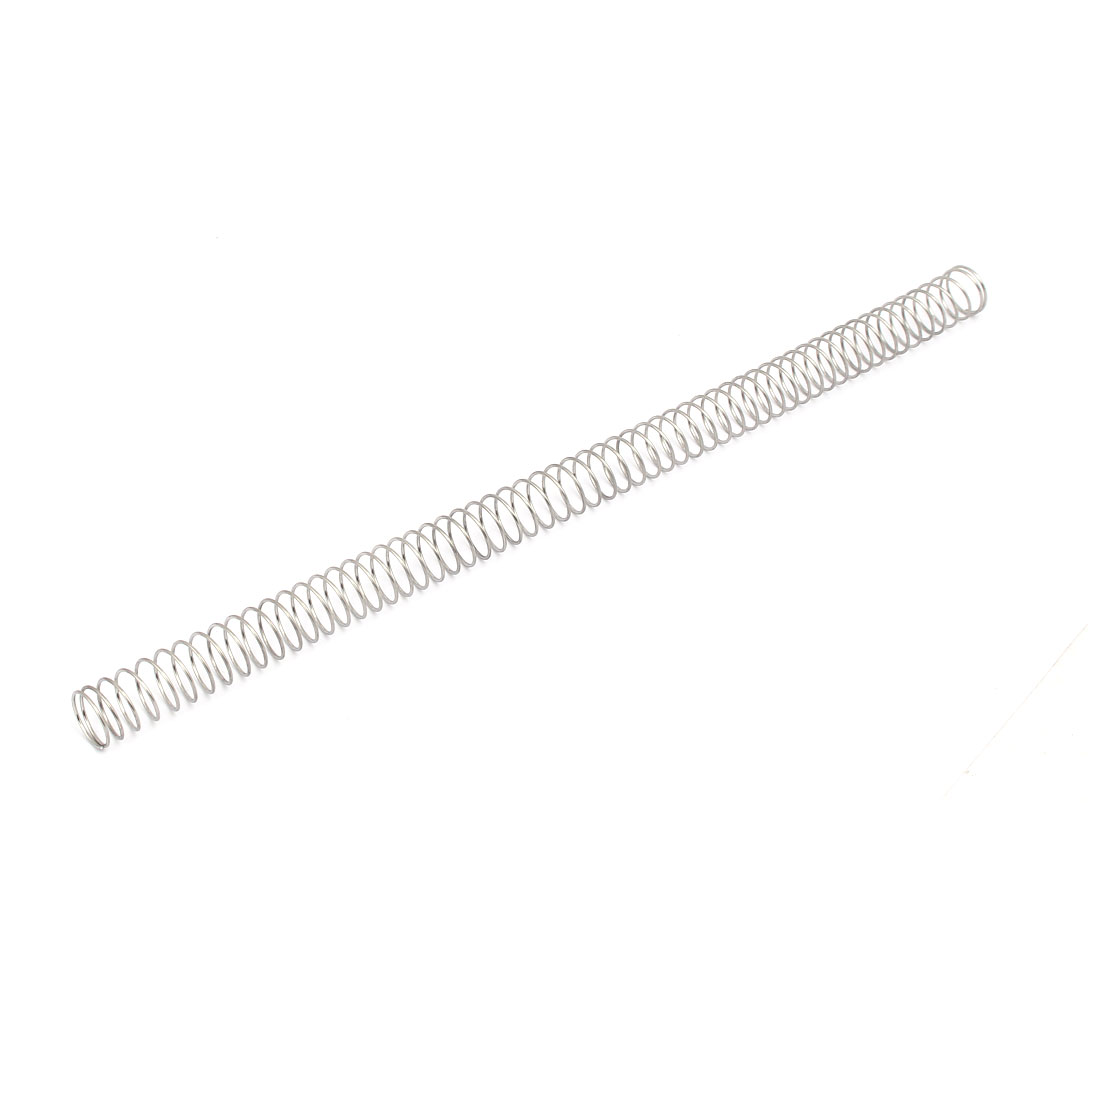 1mmx16mmx305mm 304 Stainless Steel Compression Spring Silver Tone